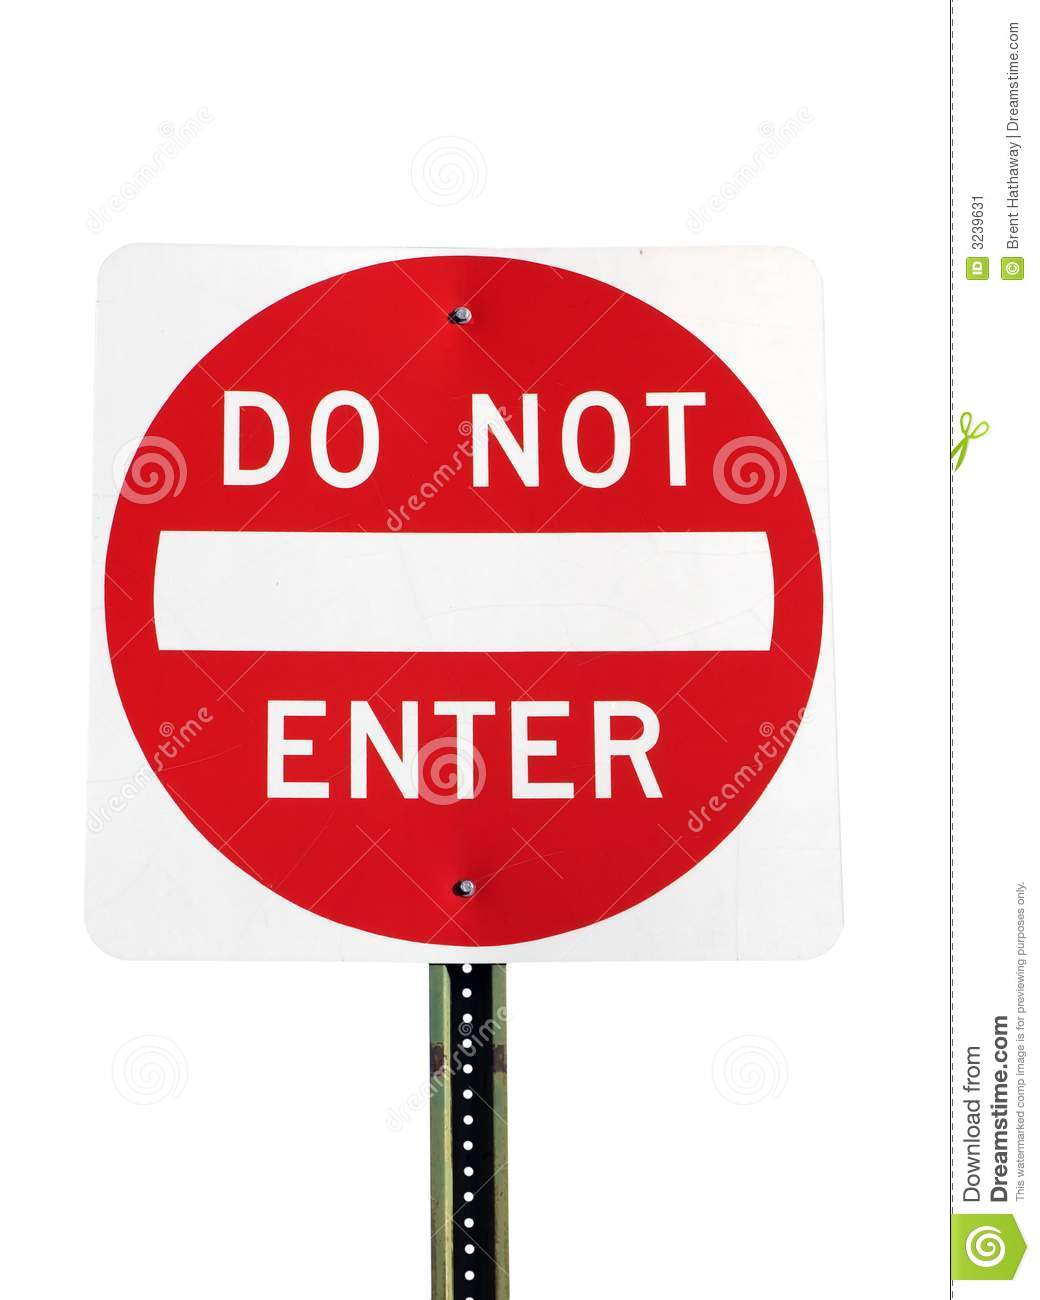 Download Do Not Enter stock image. Image of prohibited, wrong, symbol - 3239631